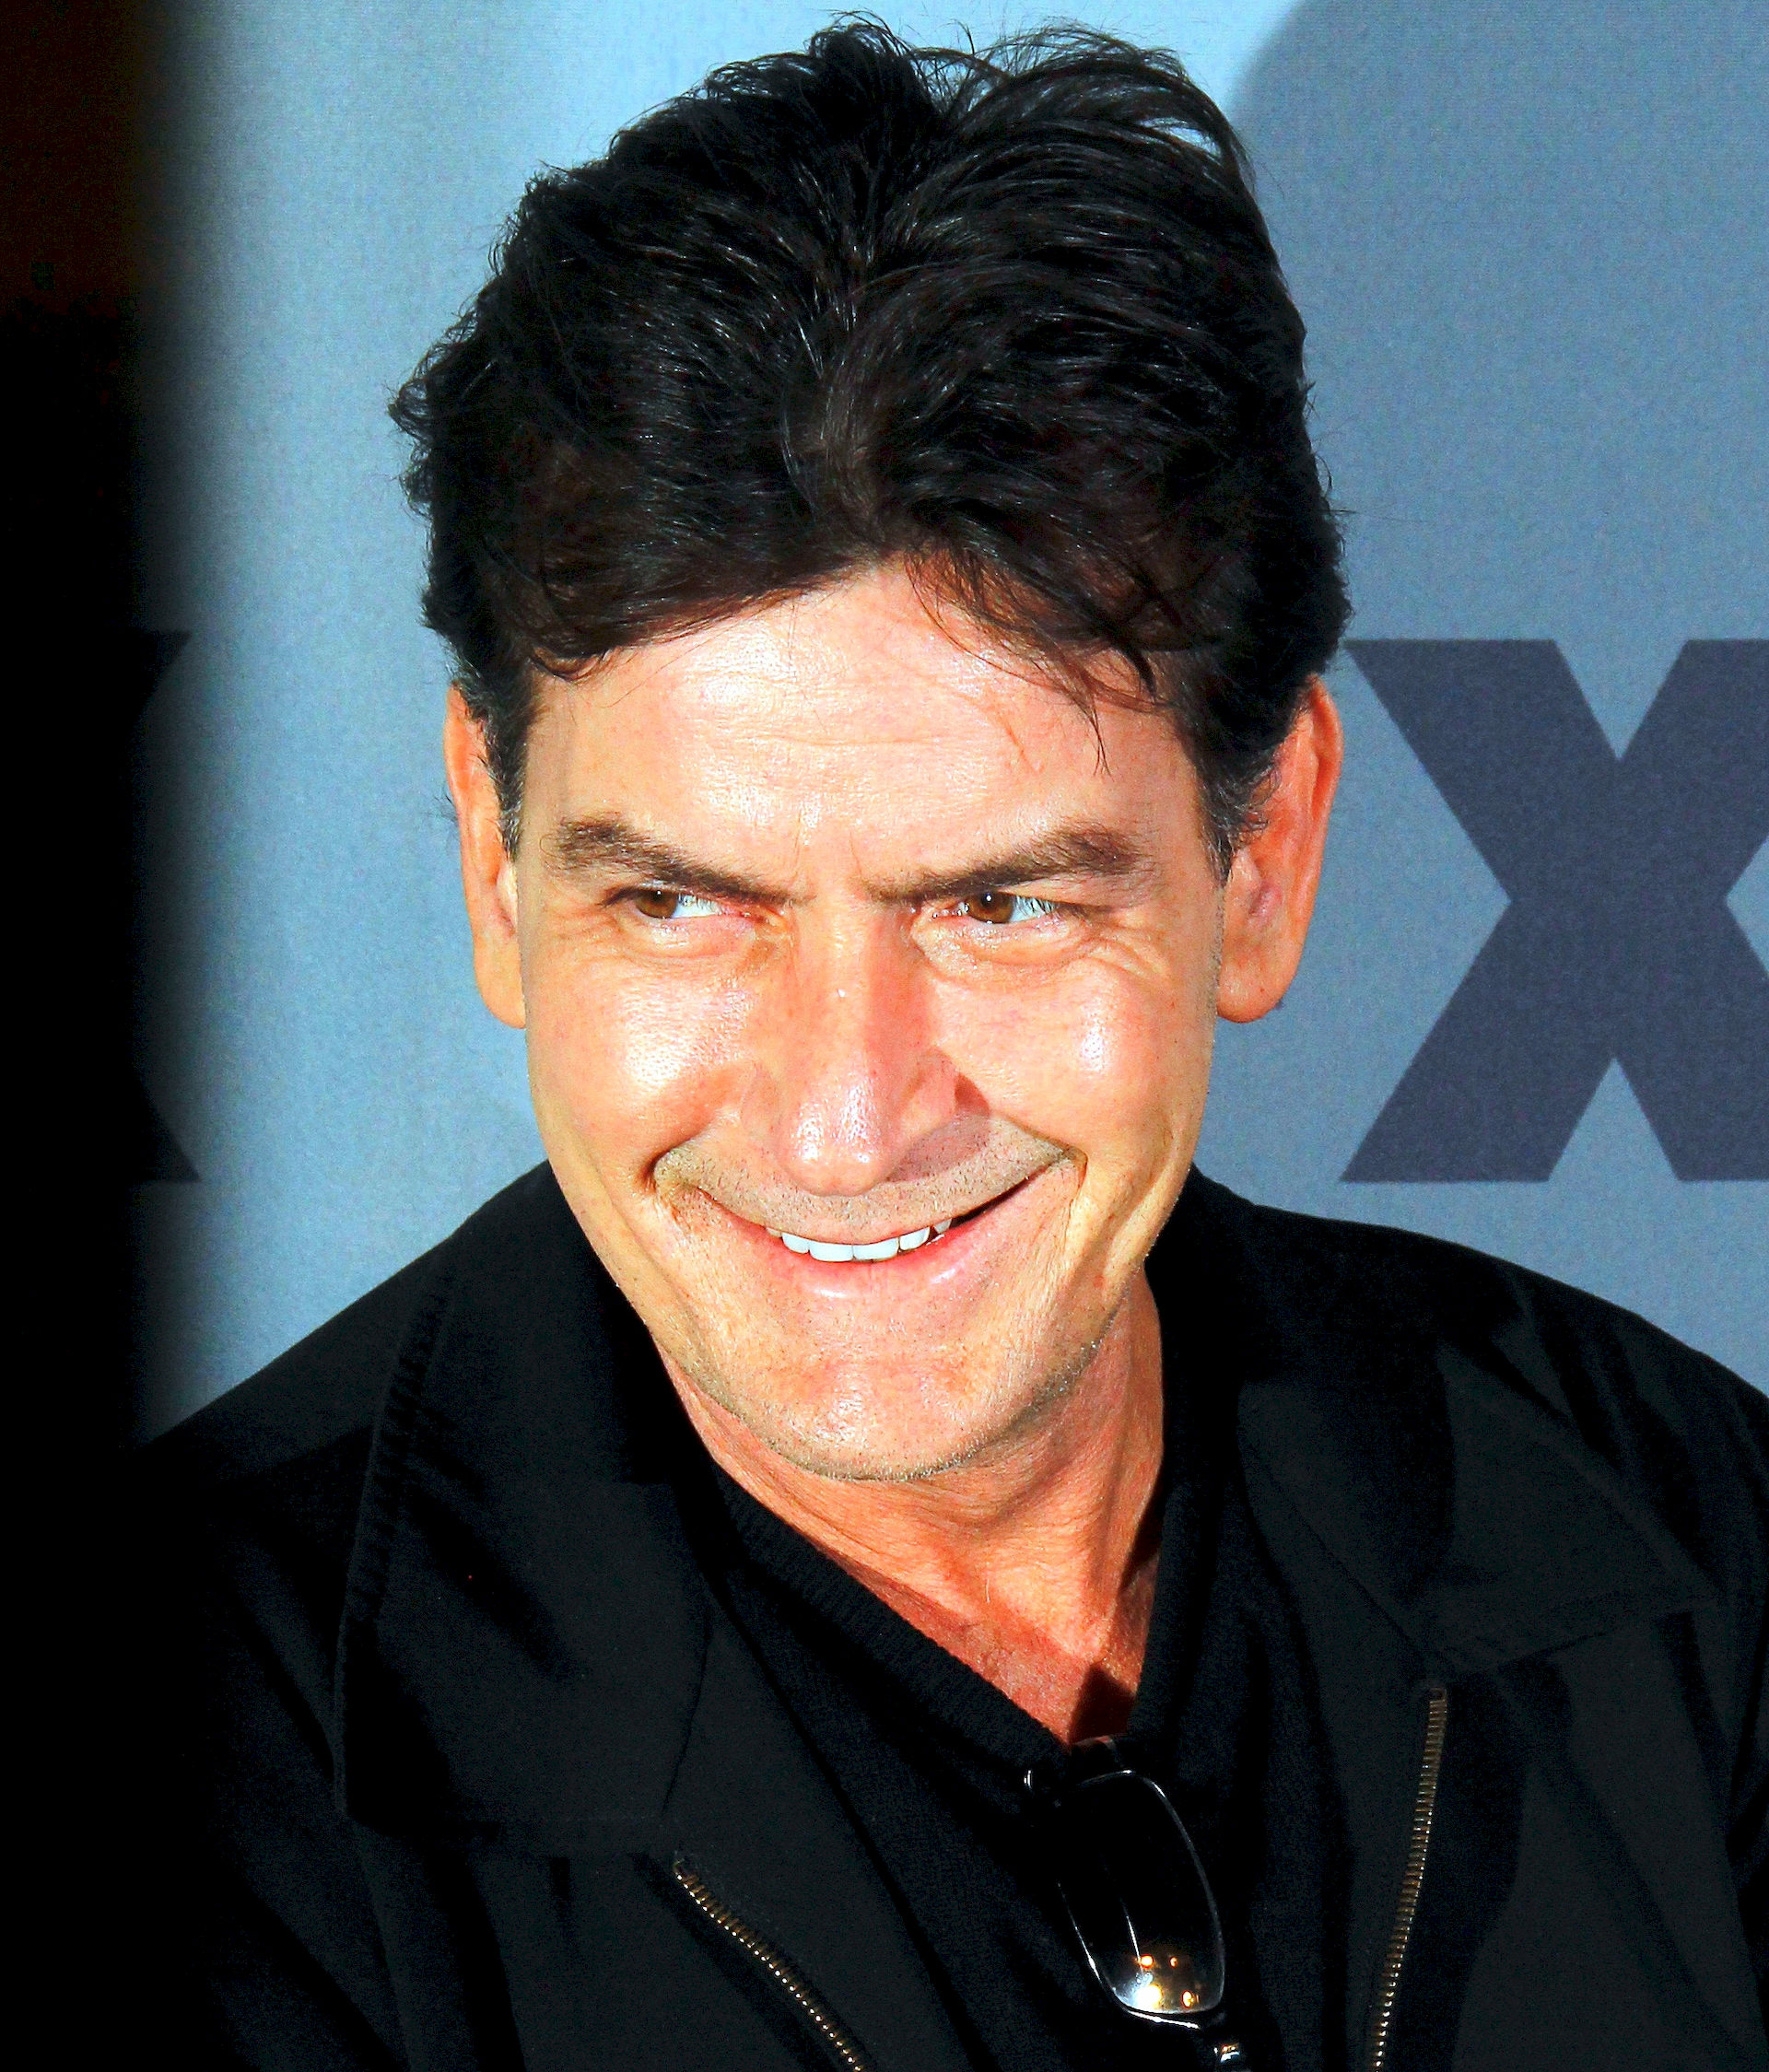 Photo of Charlie Sheen: Film and television actor from the United States